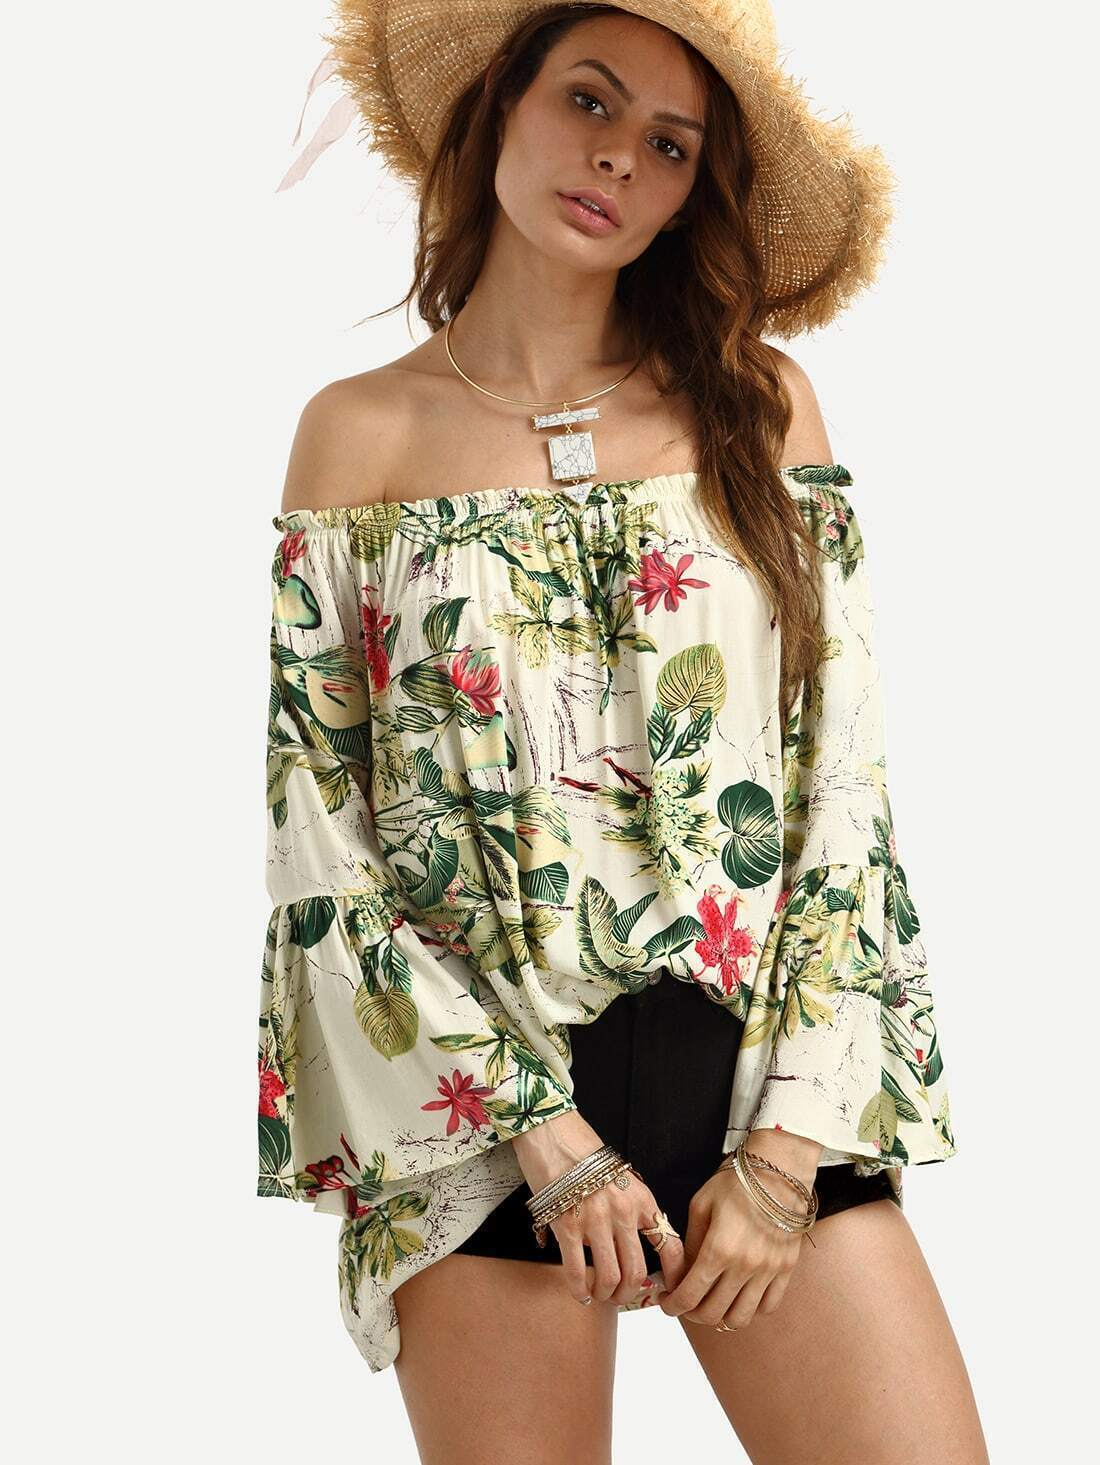 c82501b71c2c1 Off The Shoulder Bell Sleeve Floral Print Top EmmaCloth-Women Fast ...